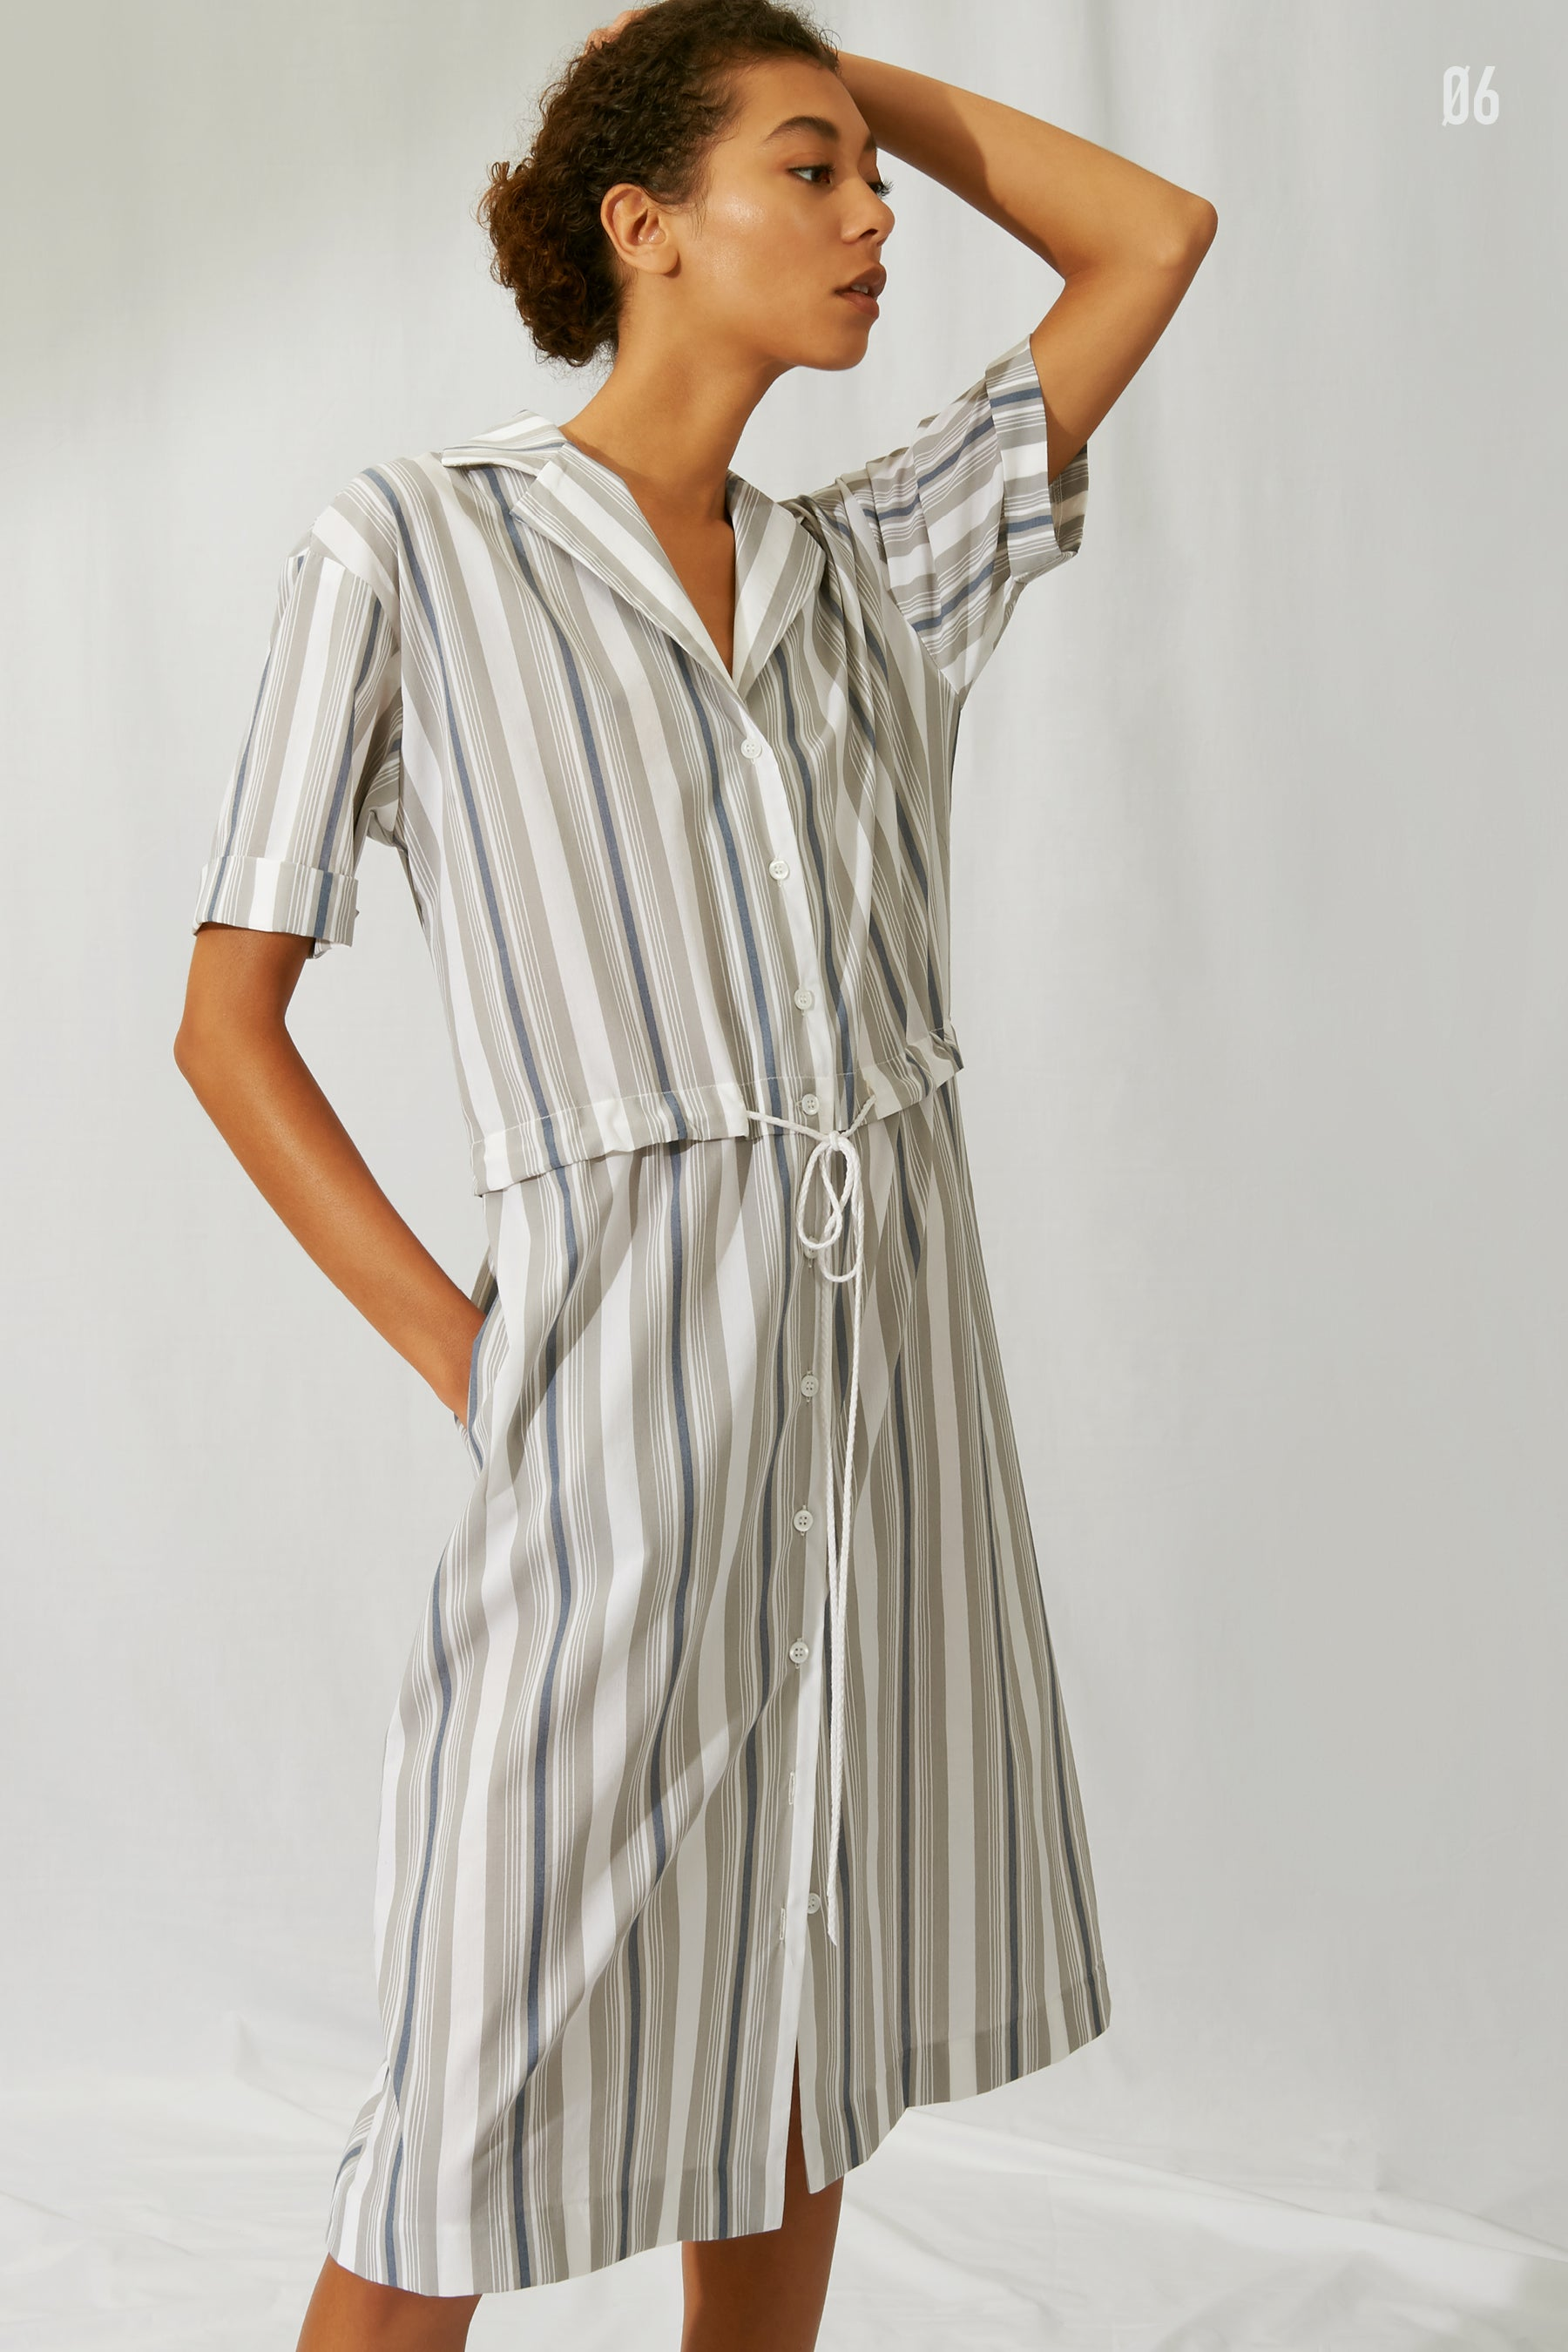 Kal Rieman Spring 2020 Lookbook Look 6